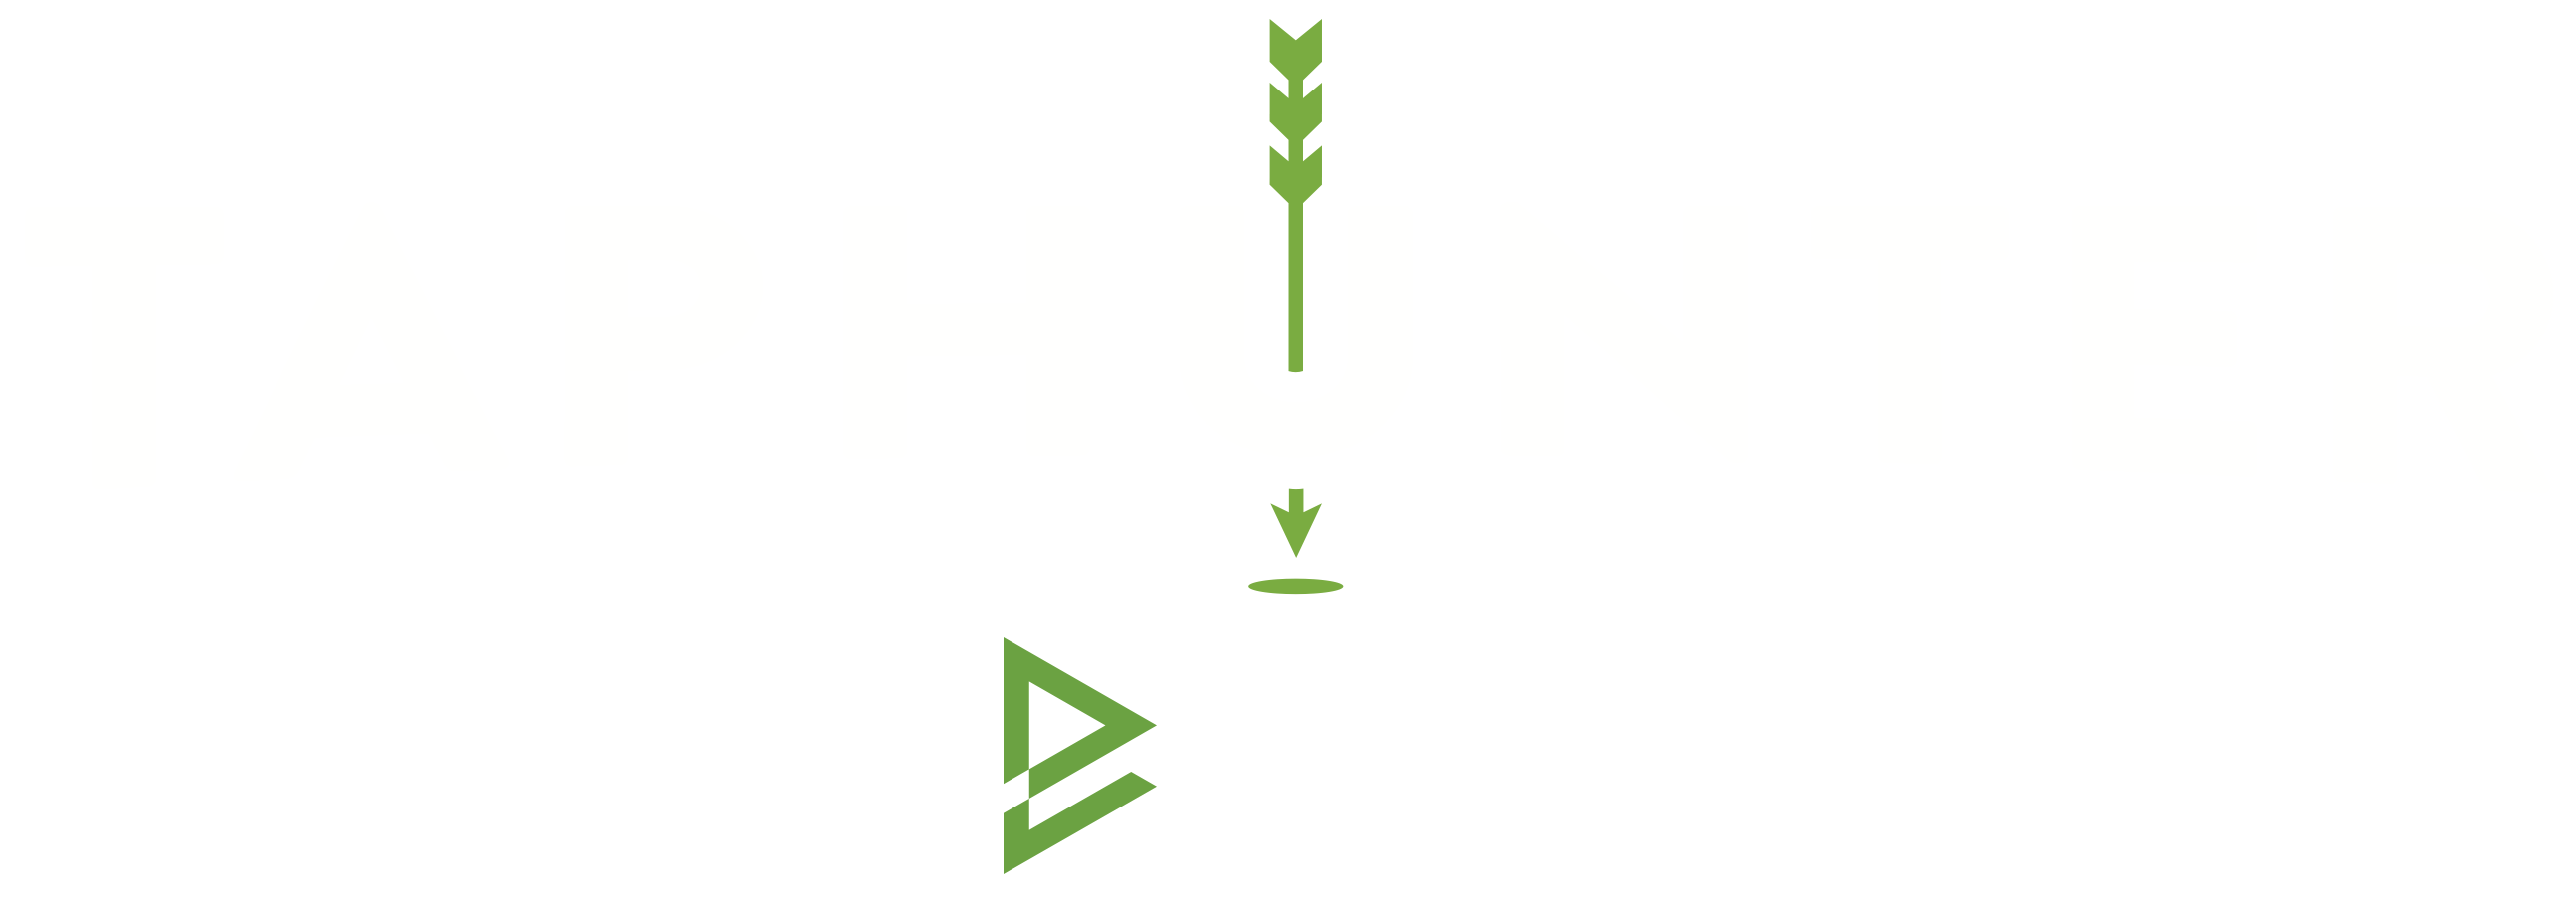 Evergreen-TapHunter logo